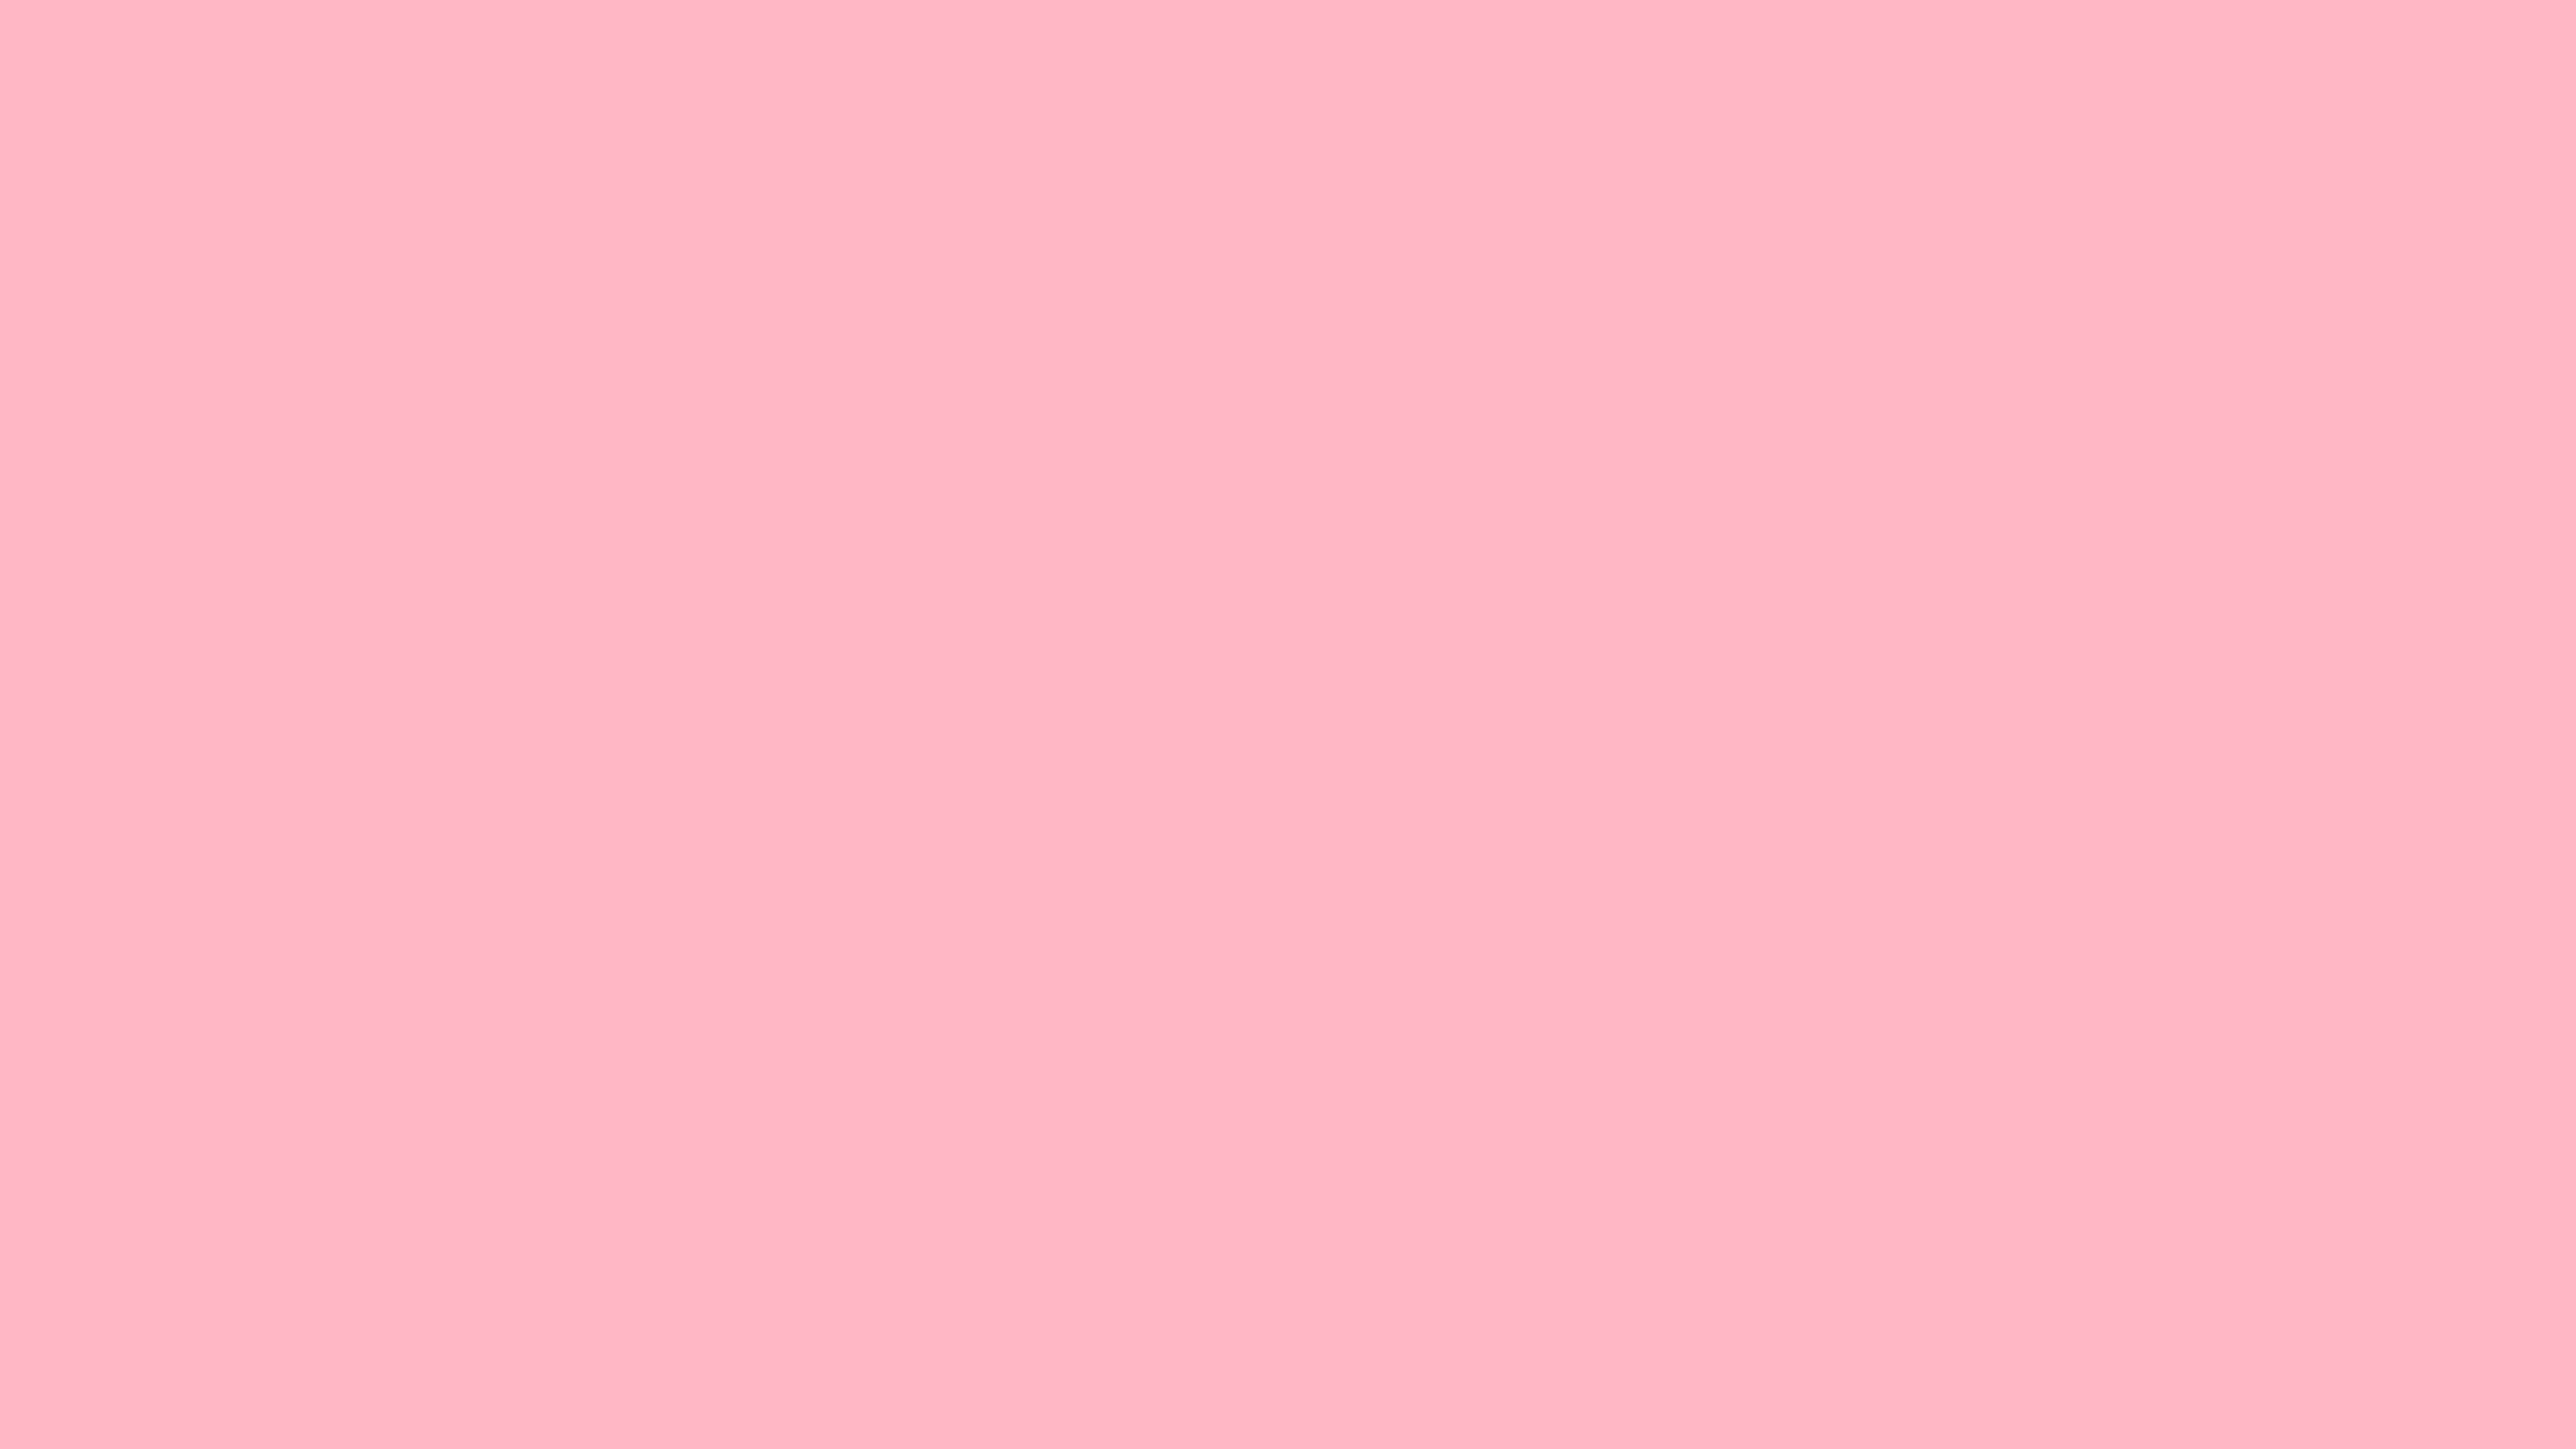 4096x2304 Cherry Blossom Pink Solid Color Background